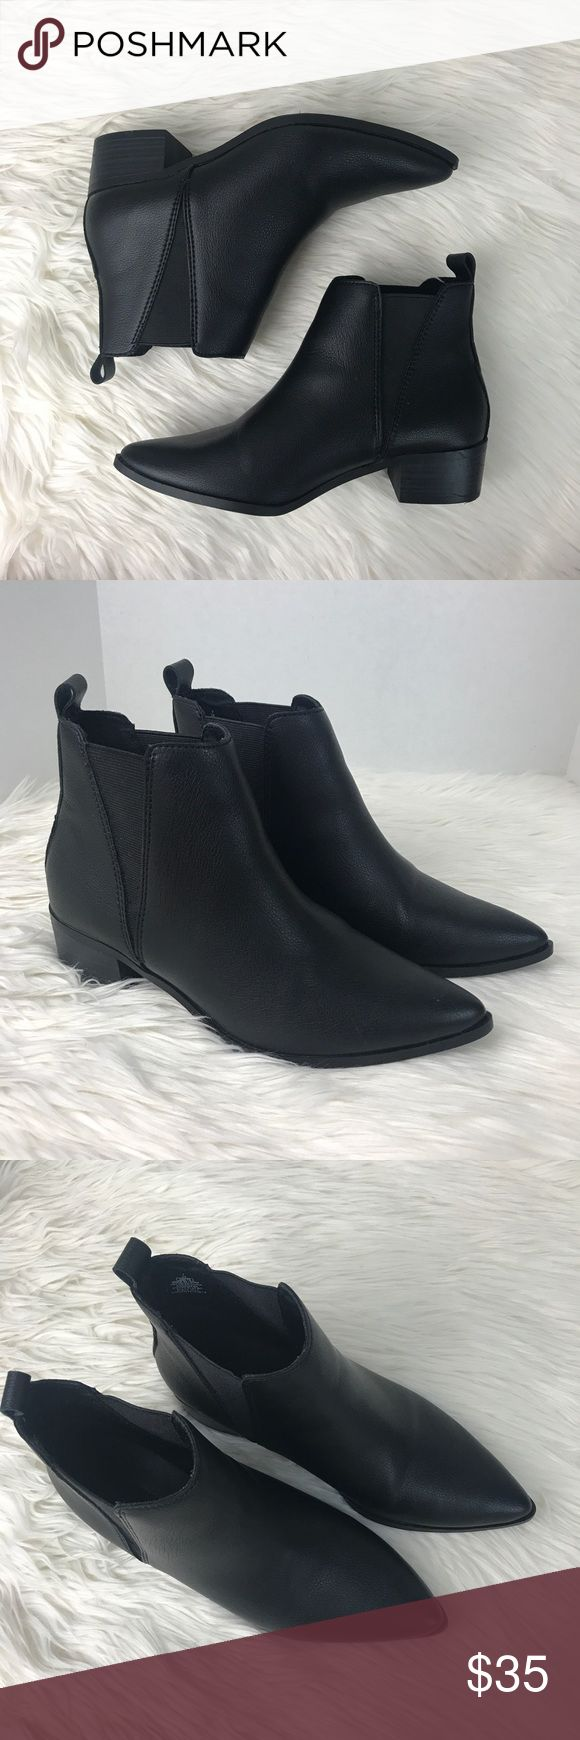 Old Navy Black Pointy Toe Flat Ankle Booties Super cute black booties with a pointed toe. Have a very low heel. They stretch around the ankle which makes them easy to put on/take off. Very gently used condition with minor signs of wear. Perfect for fall and winter. Old Navy Shoes Ankle Boots & Booties